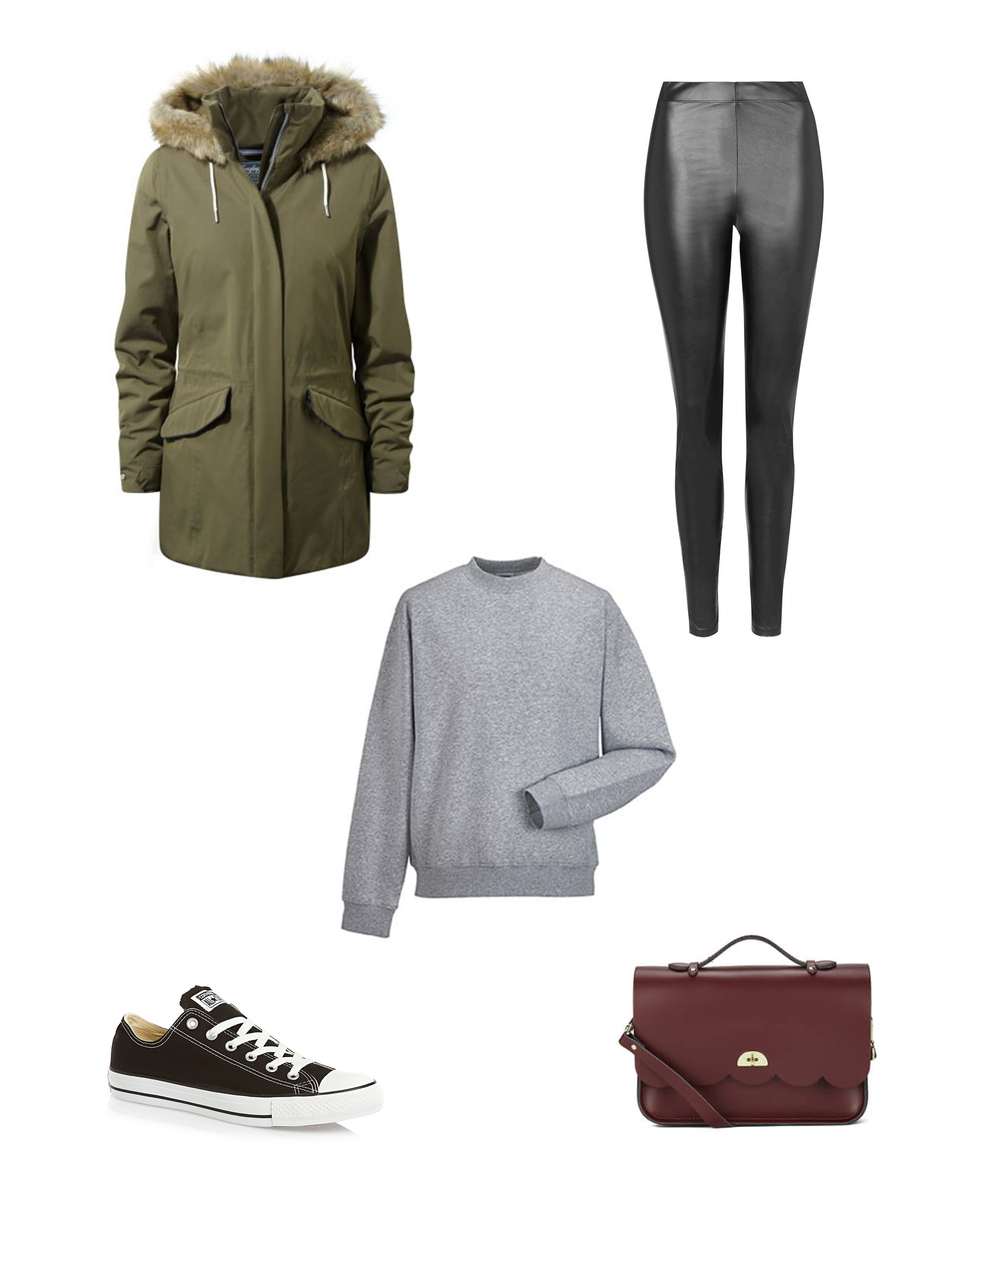 Outfit-1.png